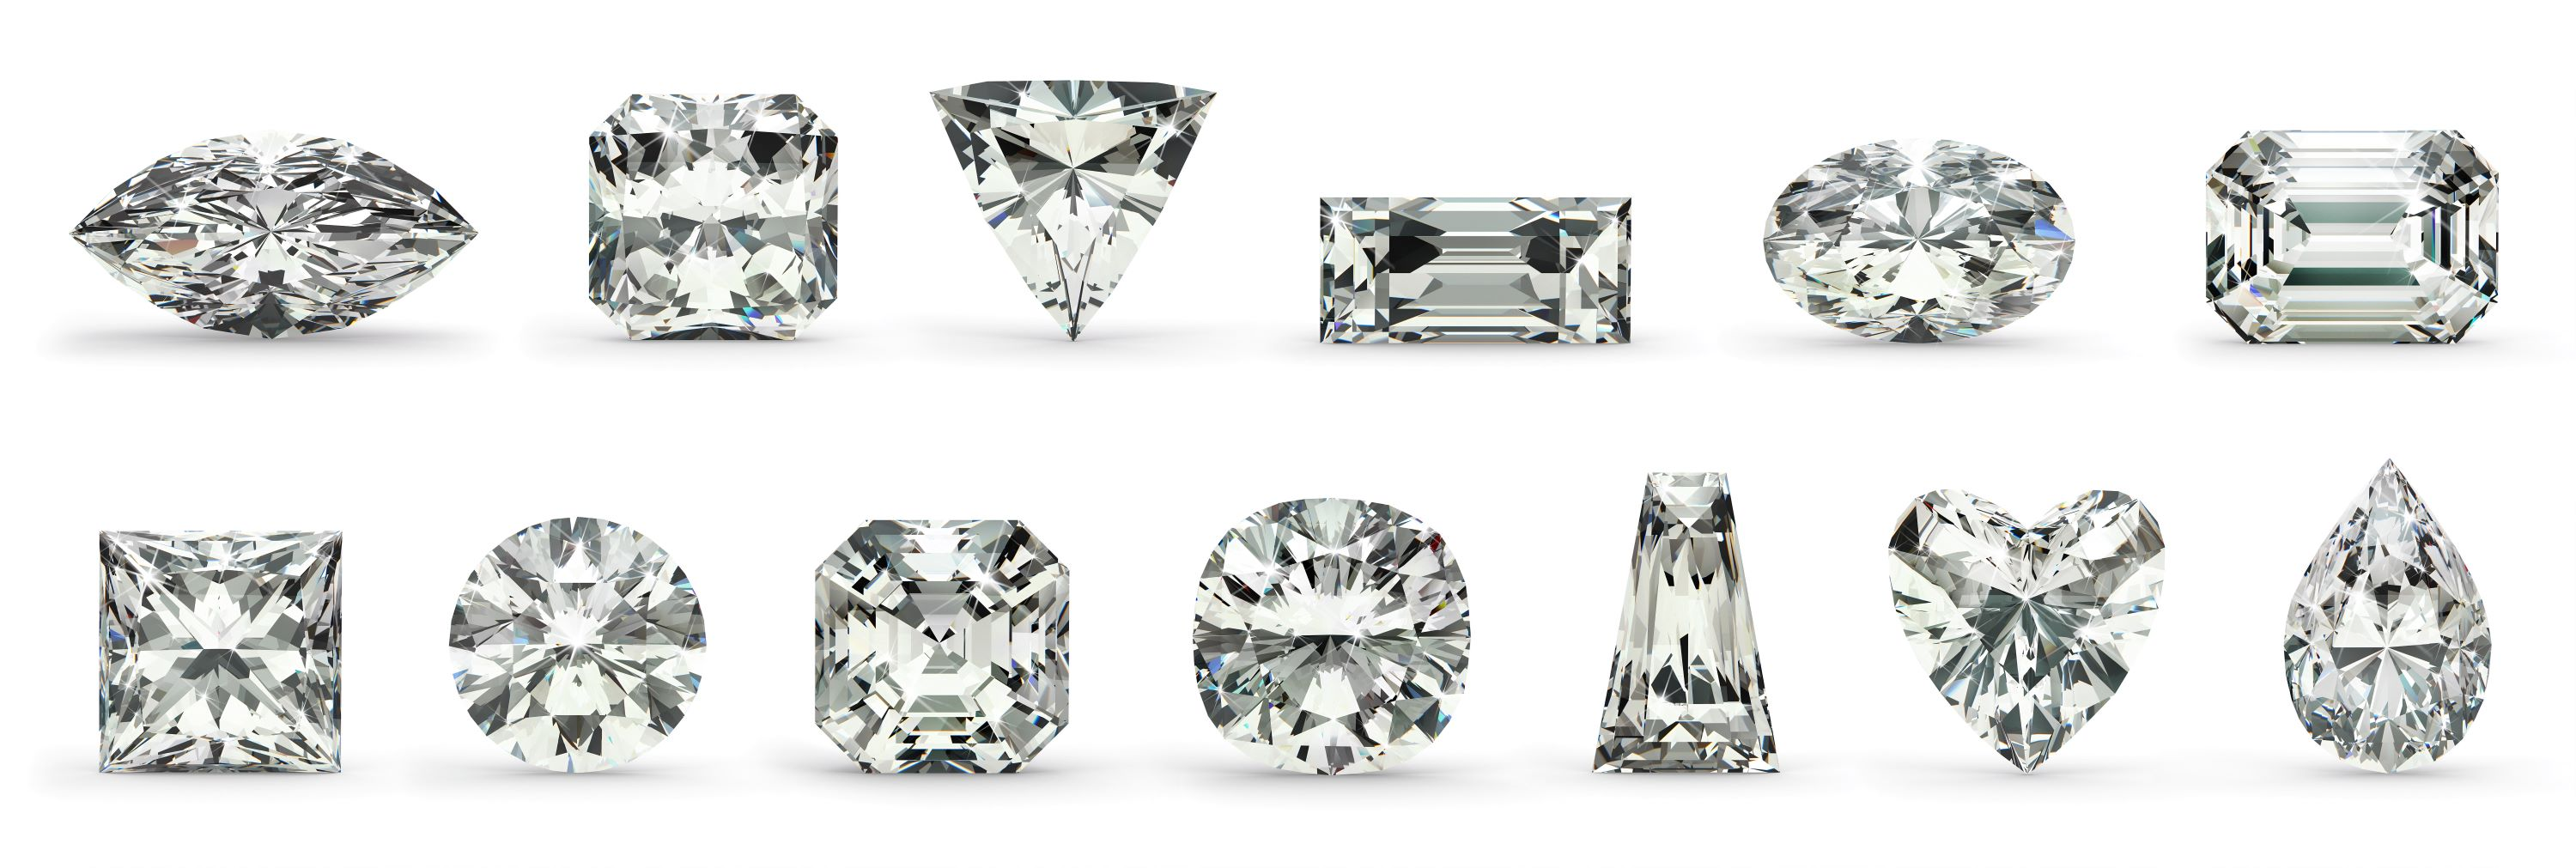 Twelve different diamond cuts